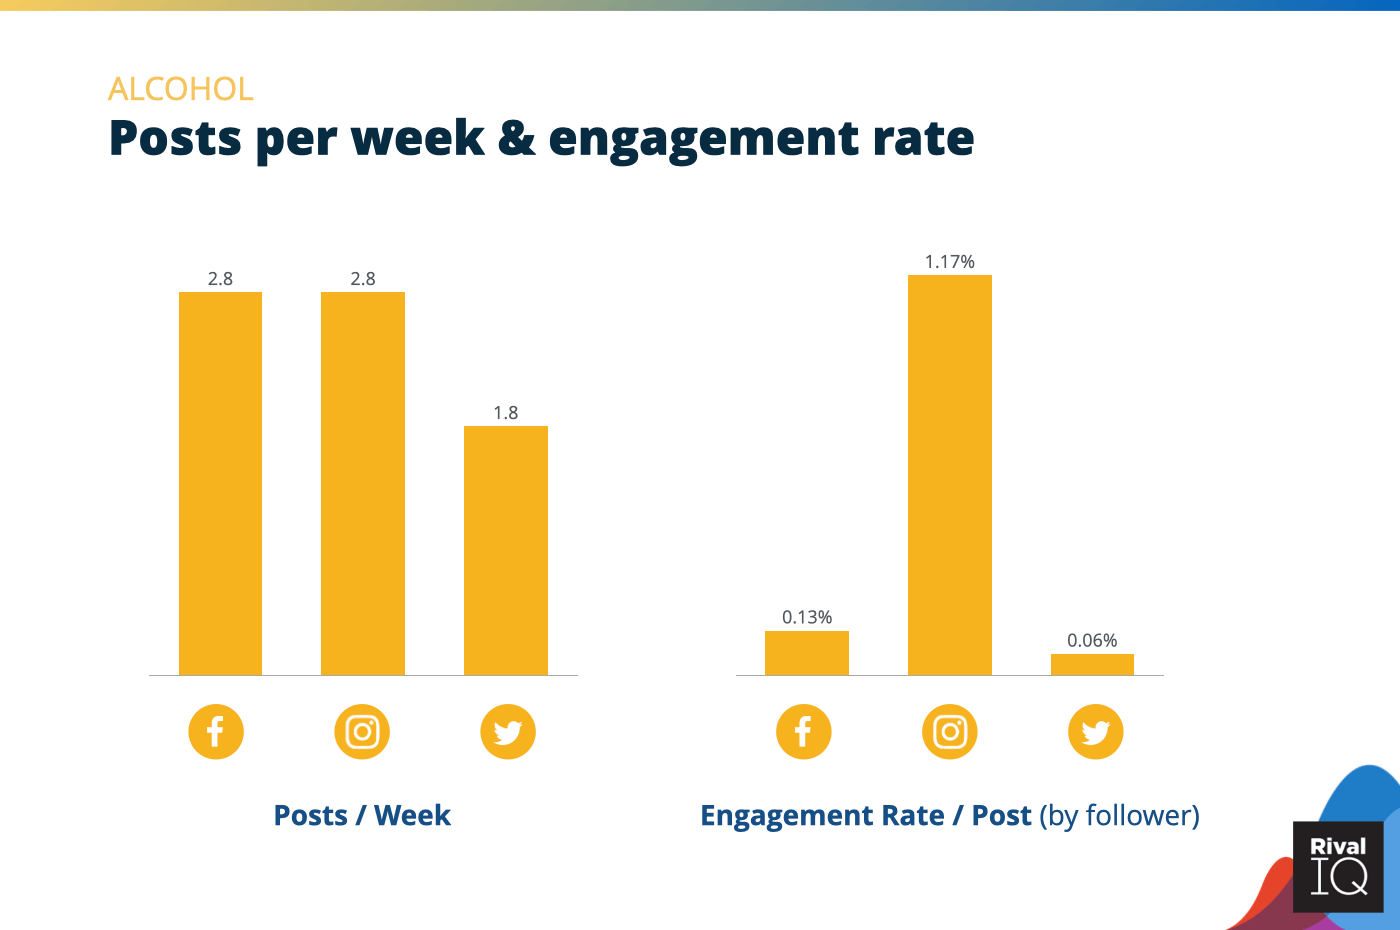 Chart of posts per week and engagement rate per post across all channels, Alcohol